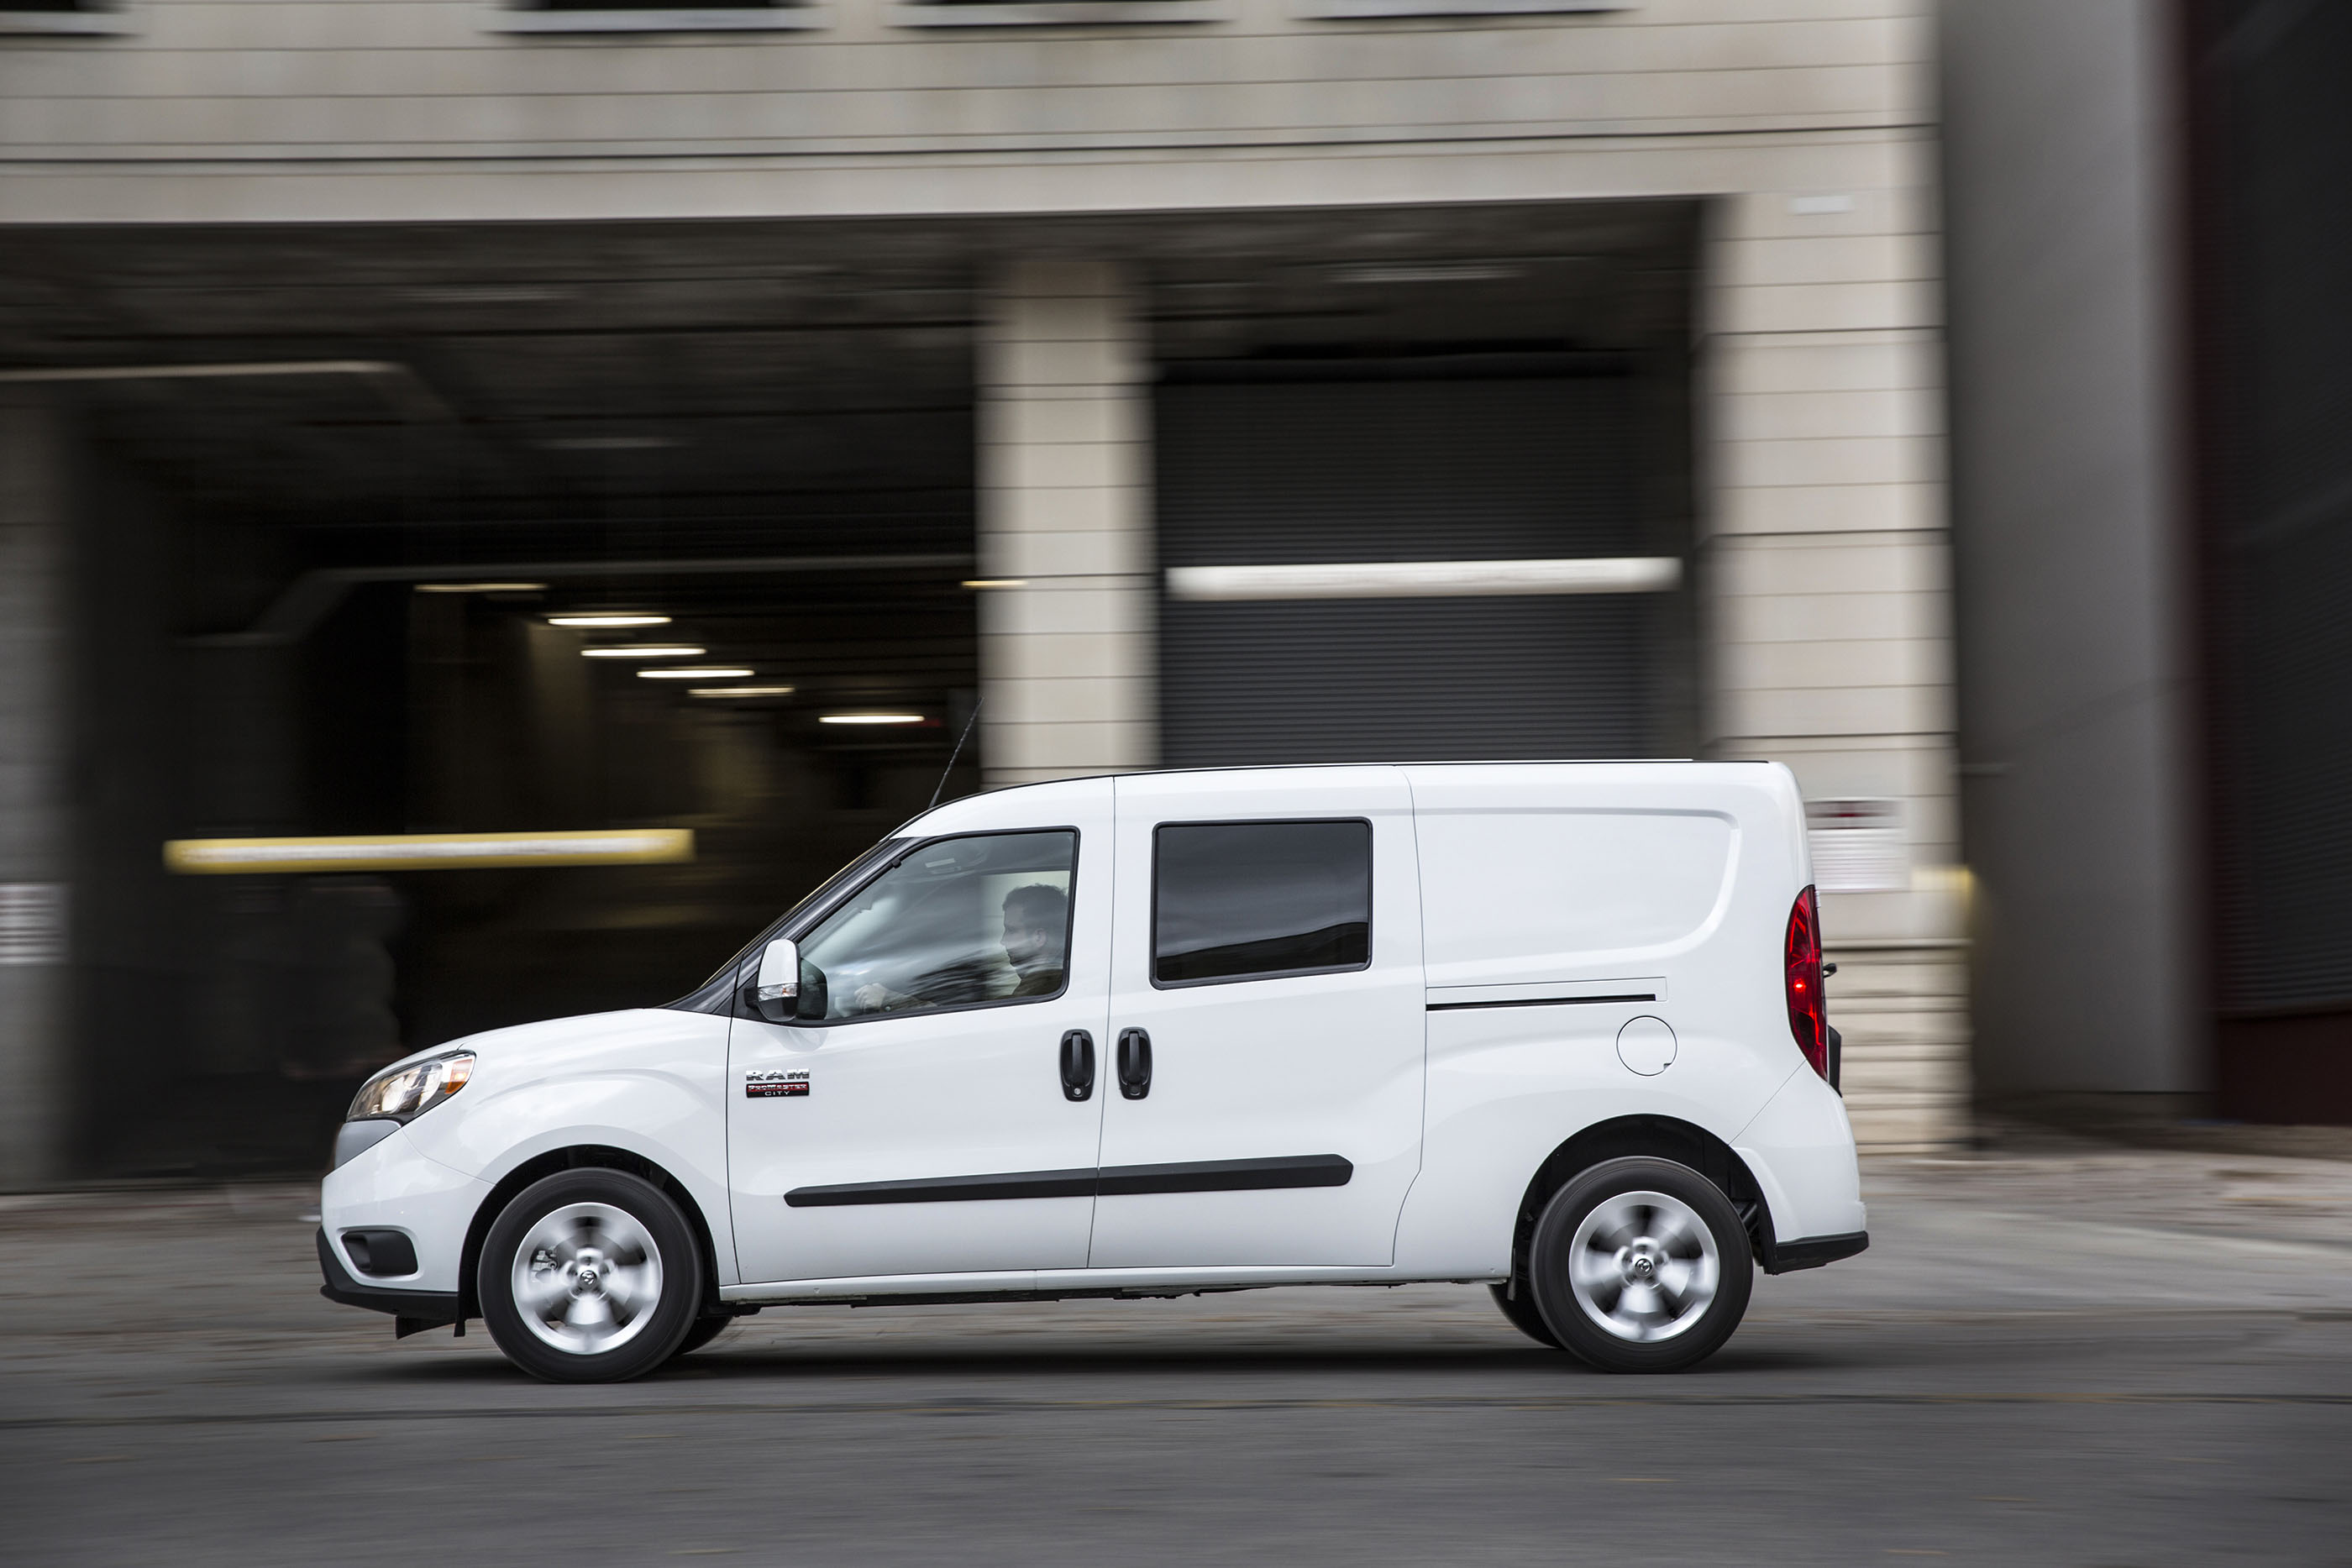 2017 ram promaster city review ratings specs prices and photos the car connection. Black Bedroom Furniture Sets. Home Design Ideas